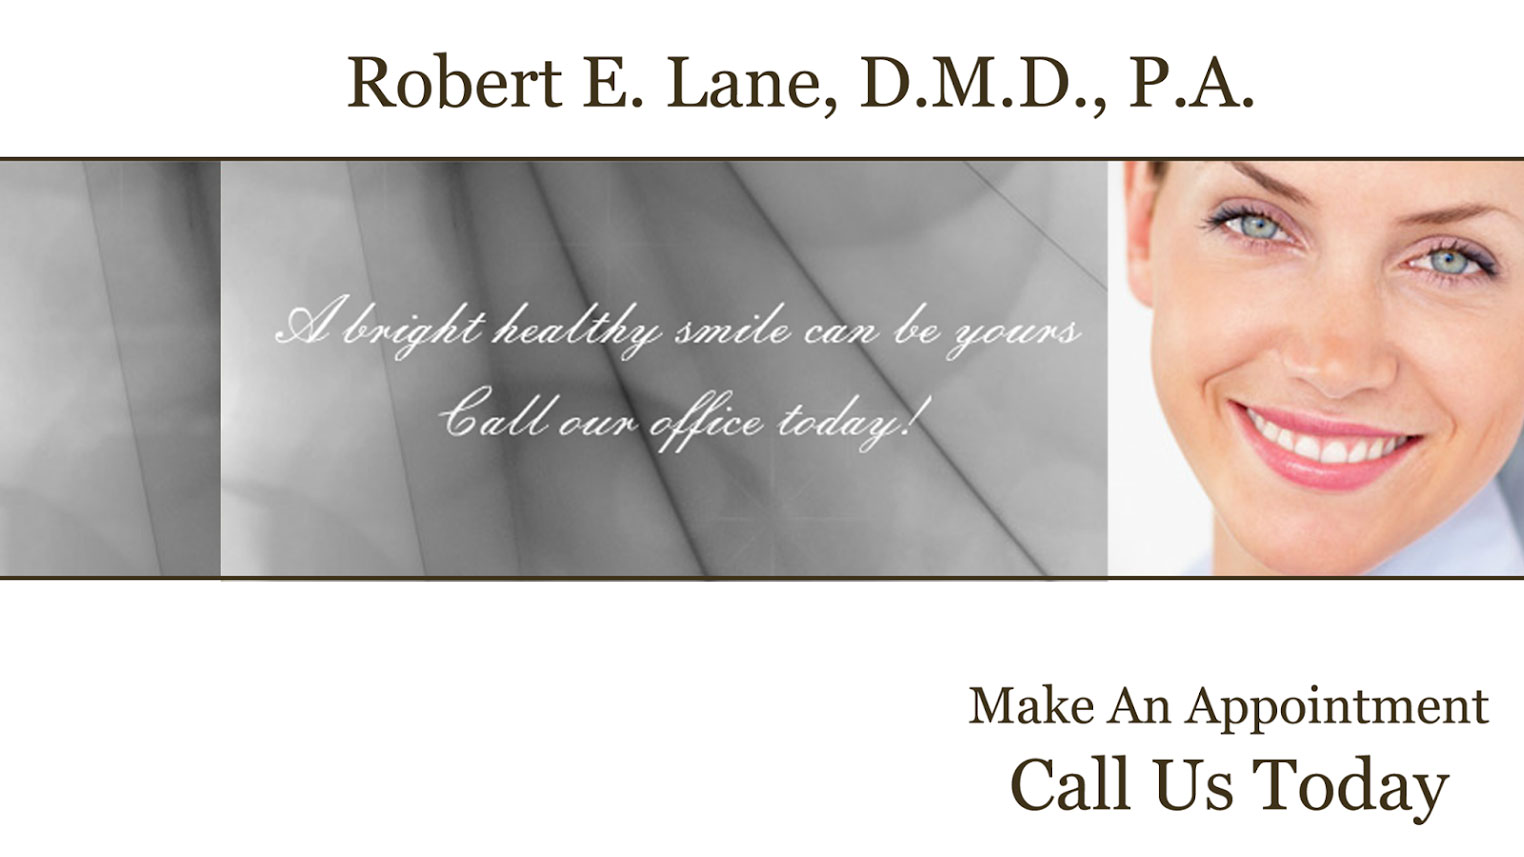 Robert E. Lane D.M.D. | Dentists in 1590 NW 10th Ave - Boca Raton FL - Reviews - Photos - Phone Number